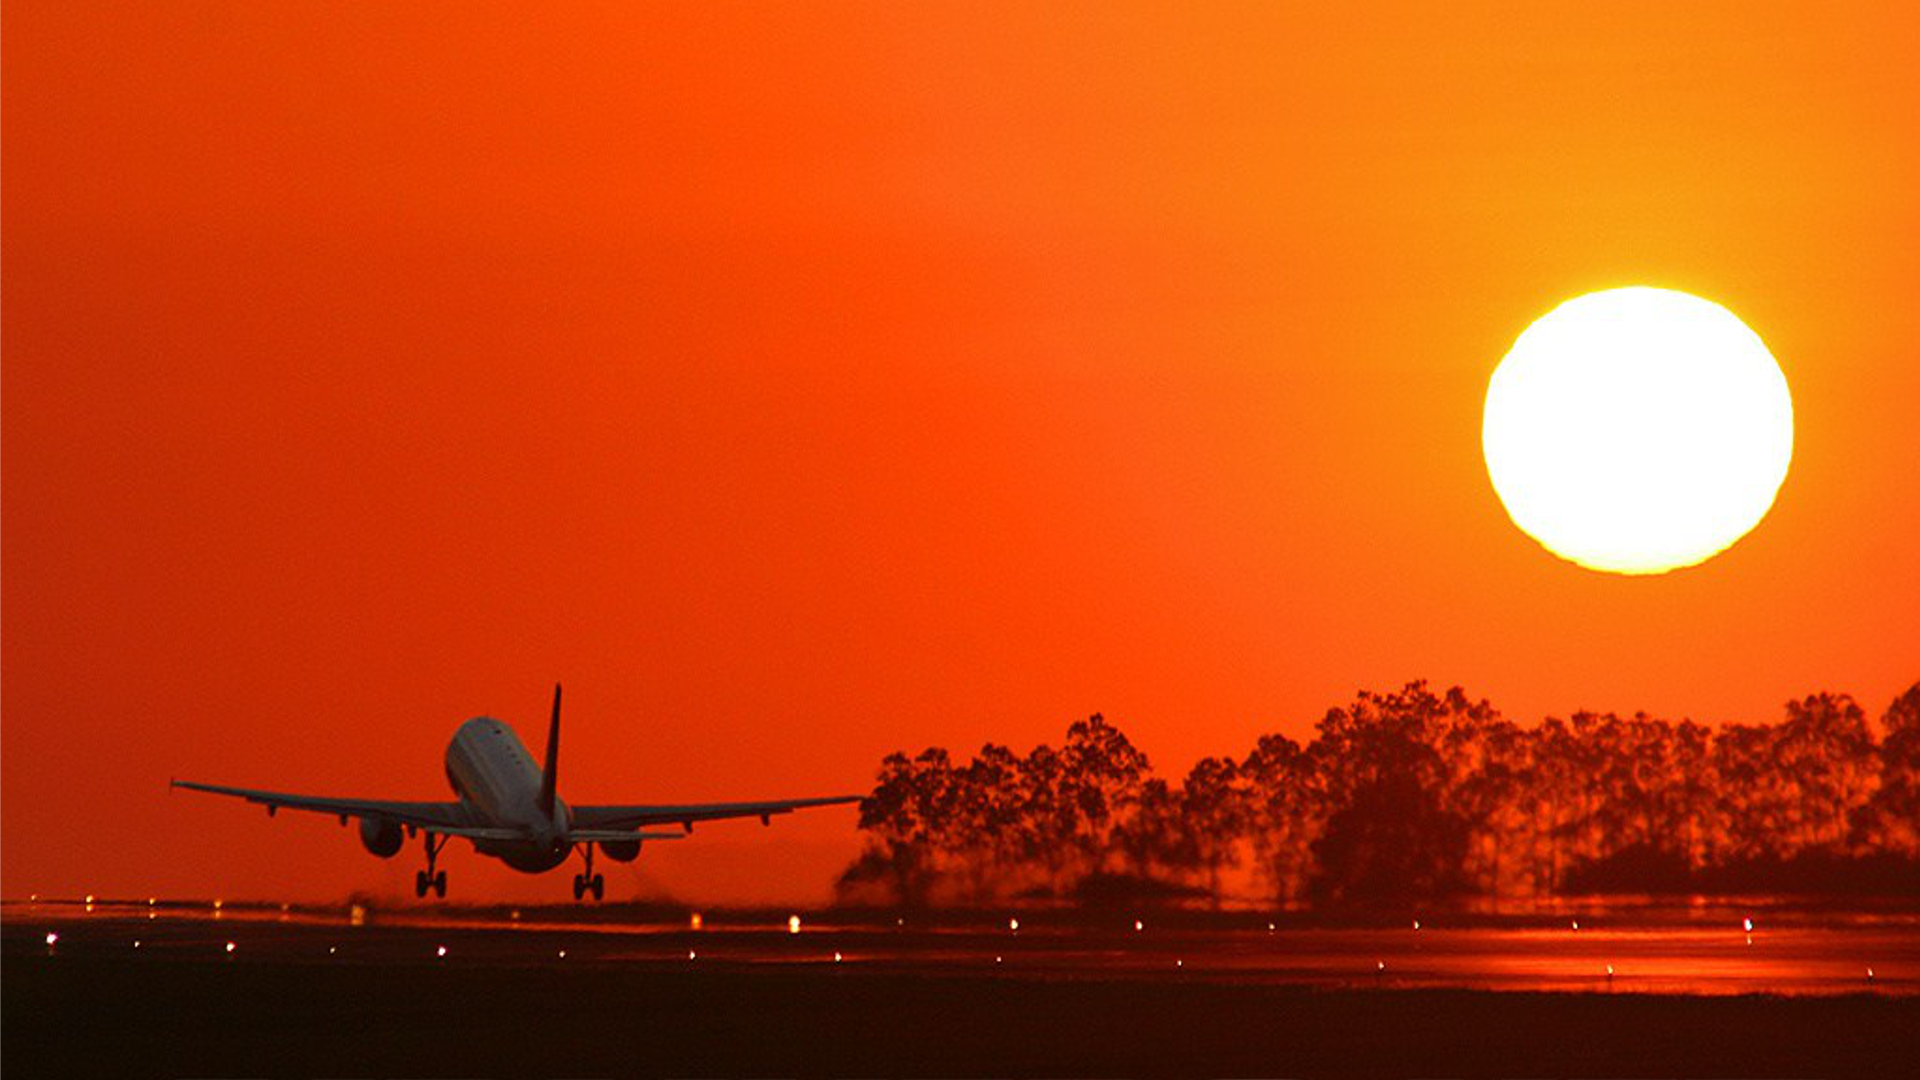 sunset-departure-79935